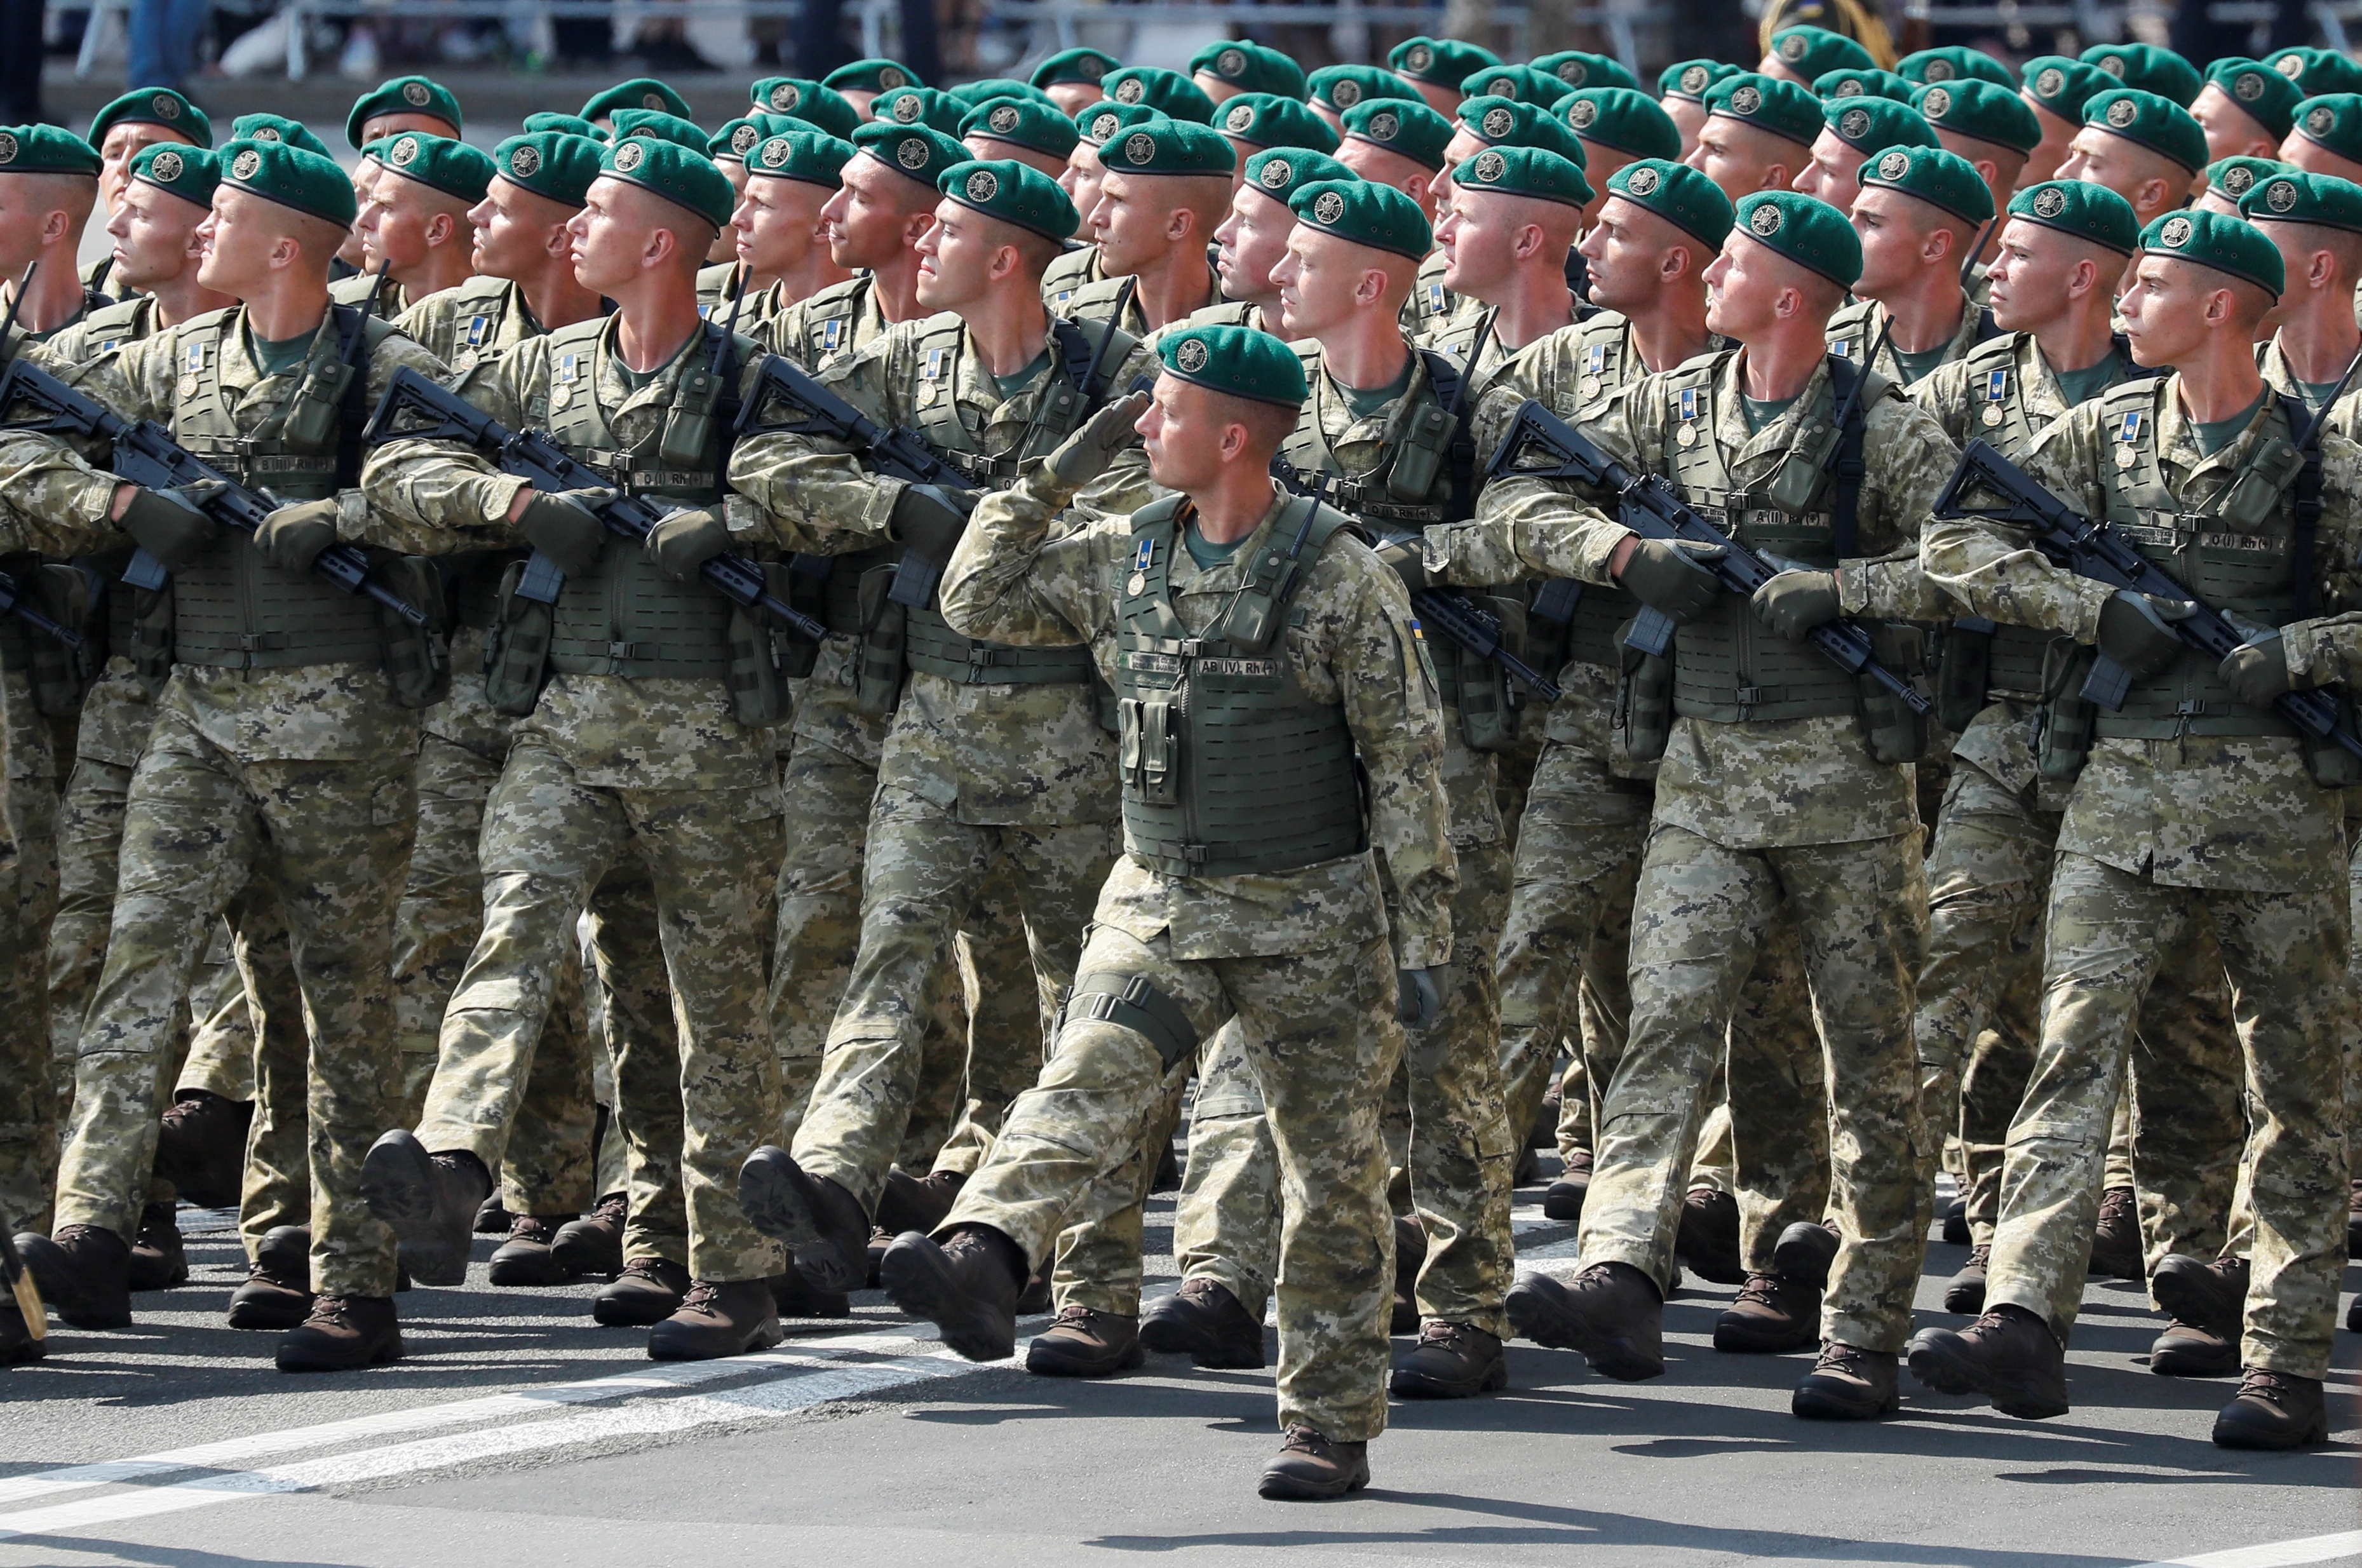 Ukraine marks Independence Day vowing to reclaim annexed territory